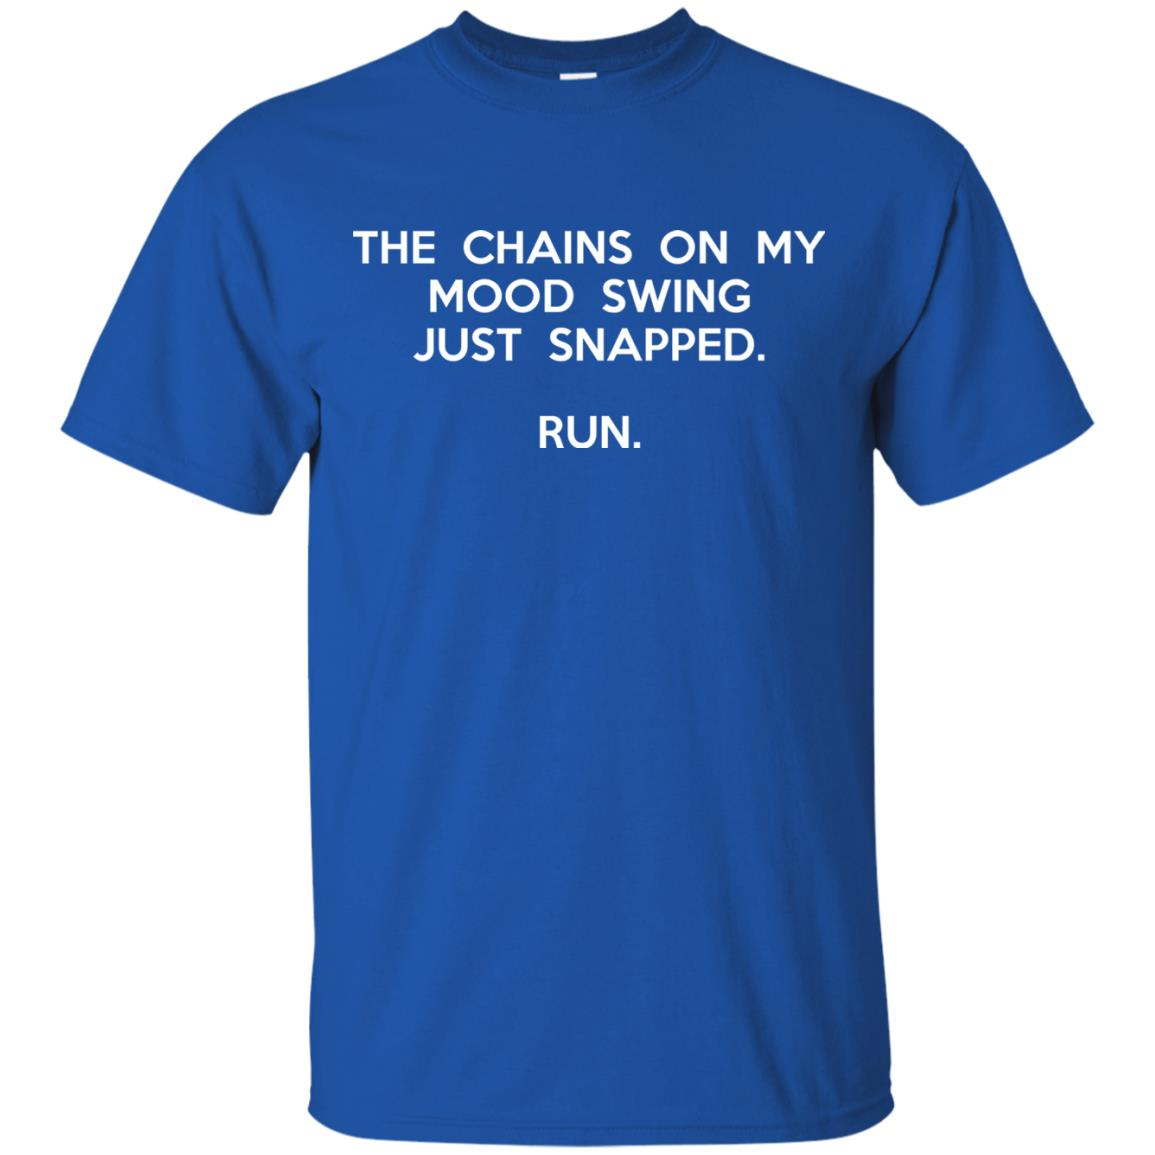 image 2937 - The chains on my mood swing just snapped shirt